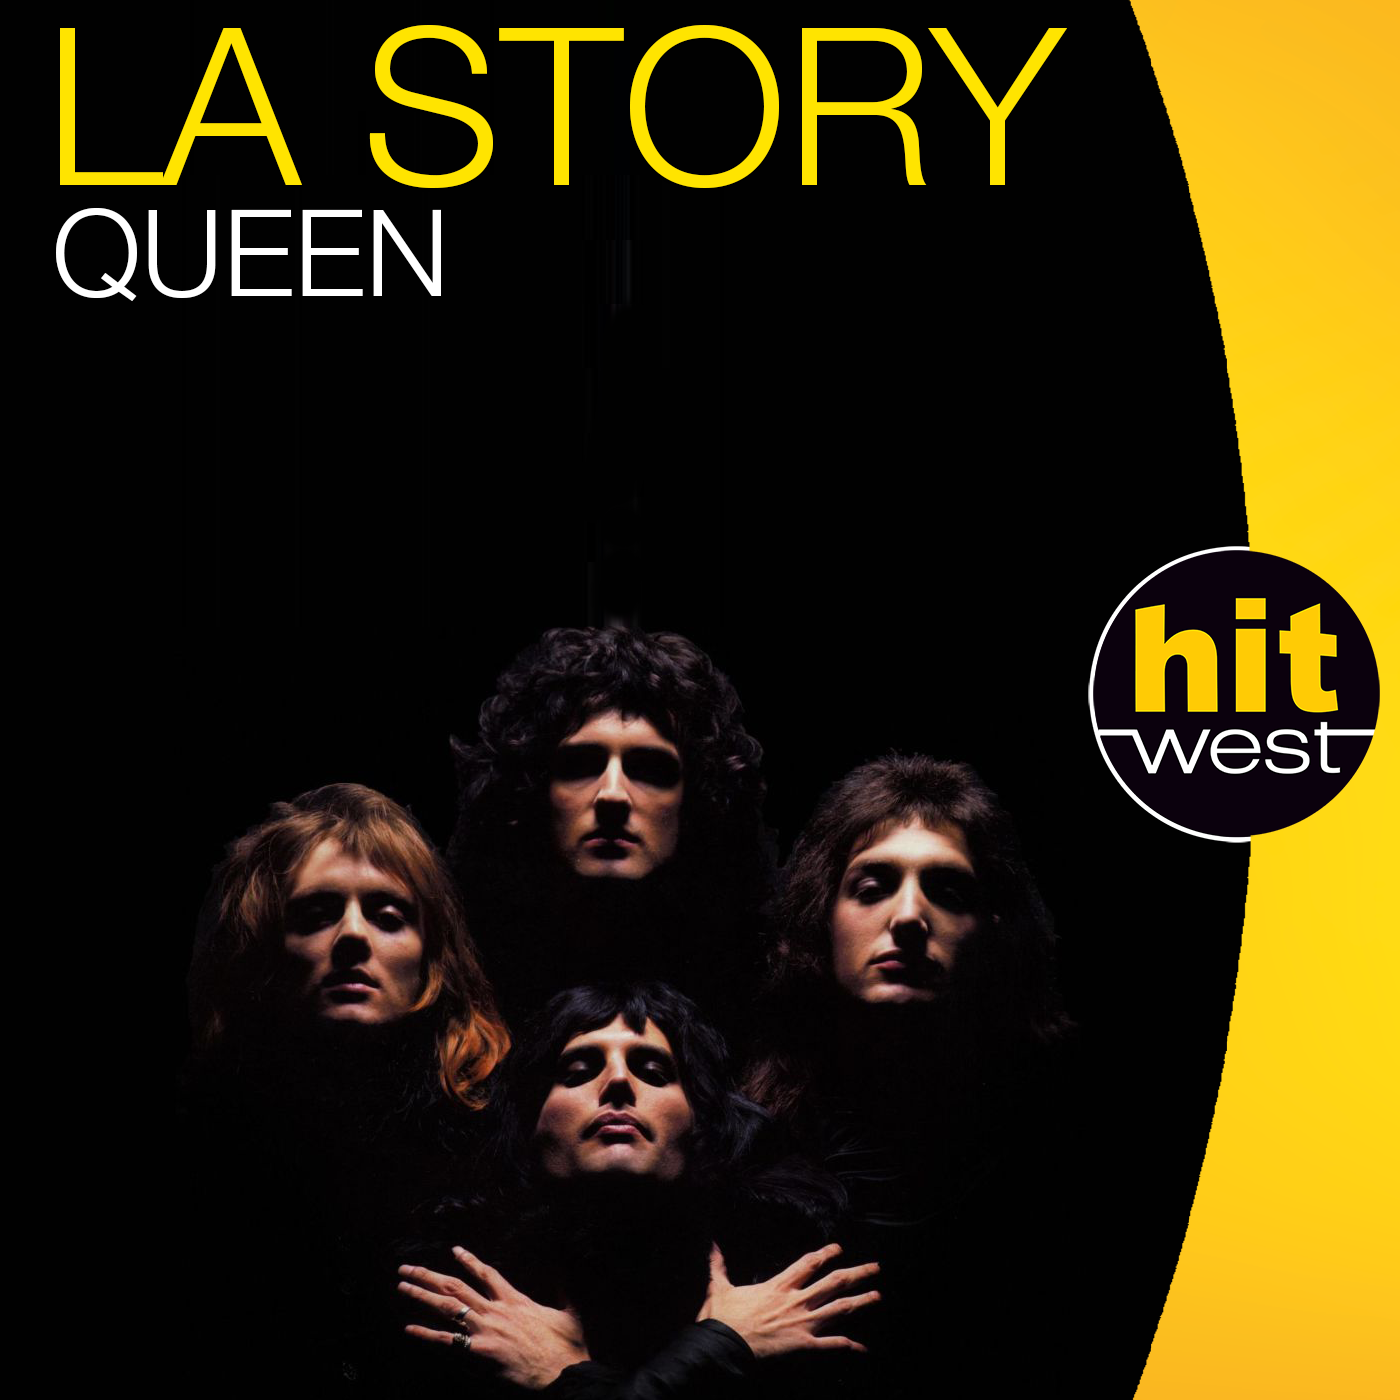 HW-story-queen.png (528 KB)